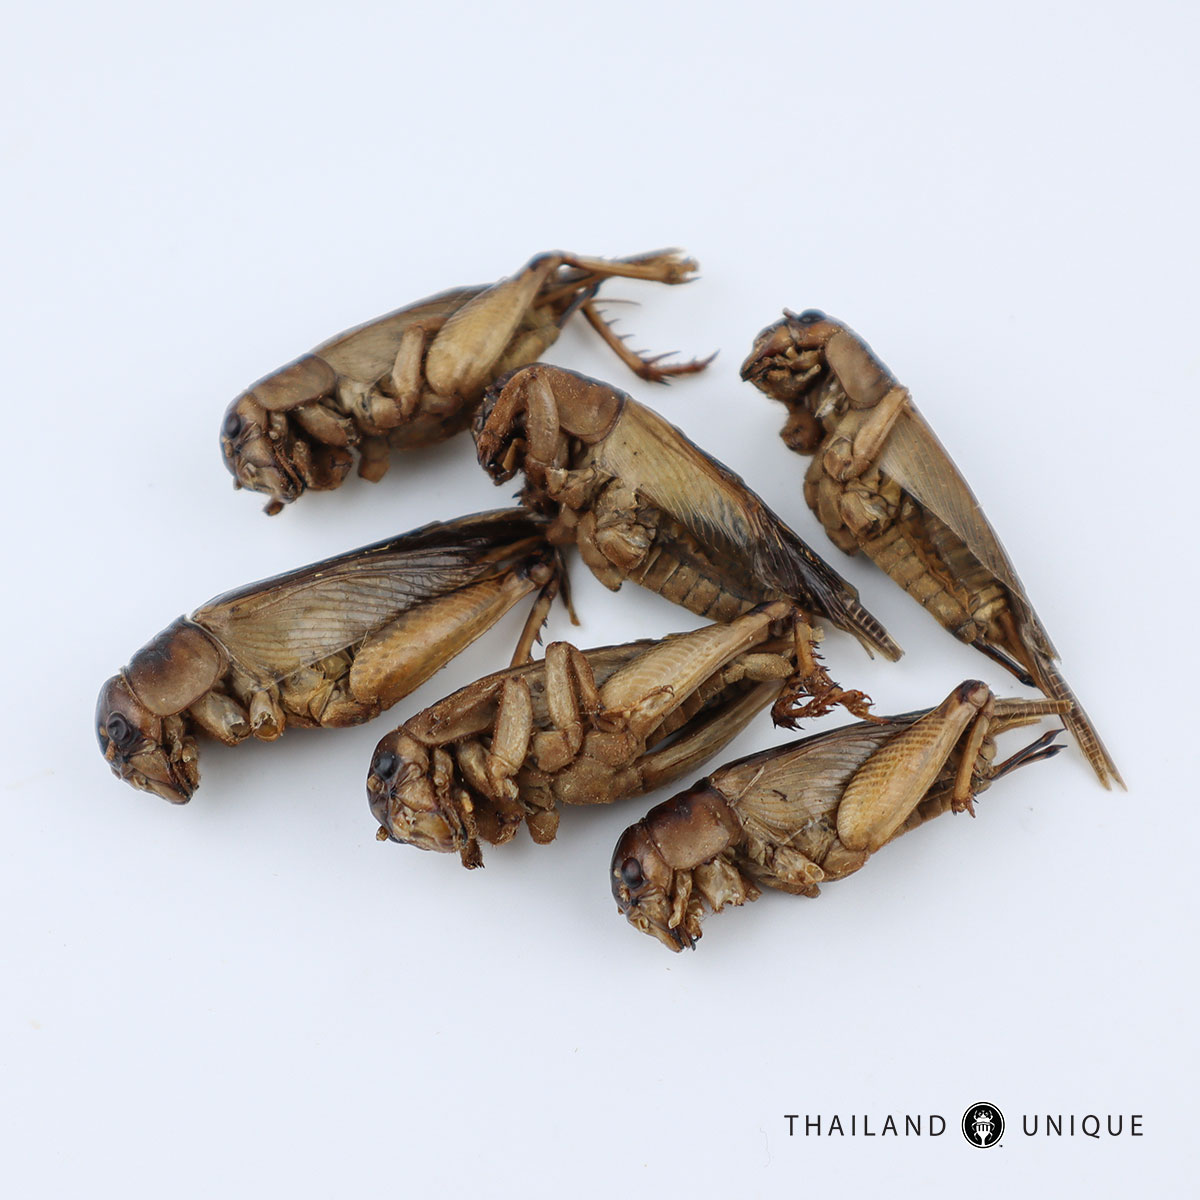 edible giant crickets